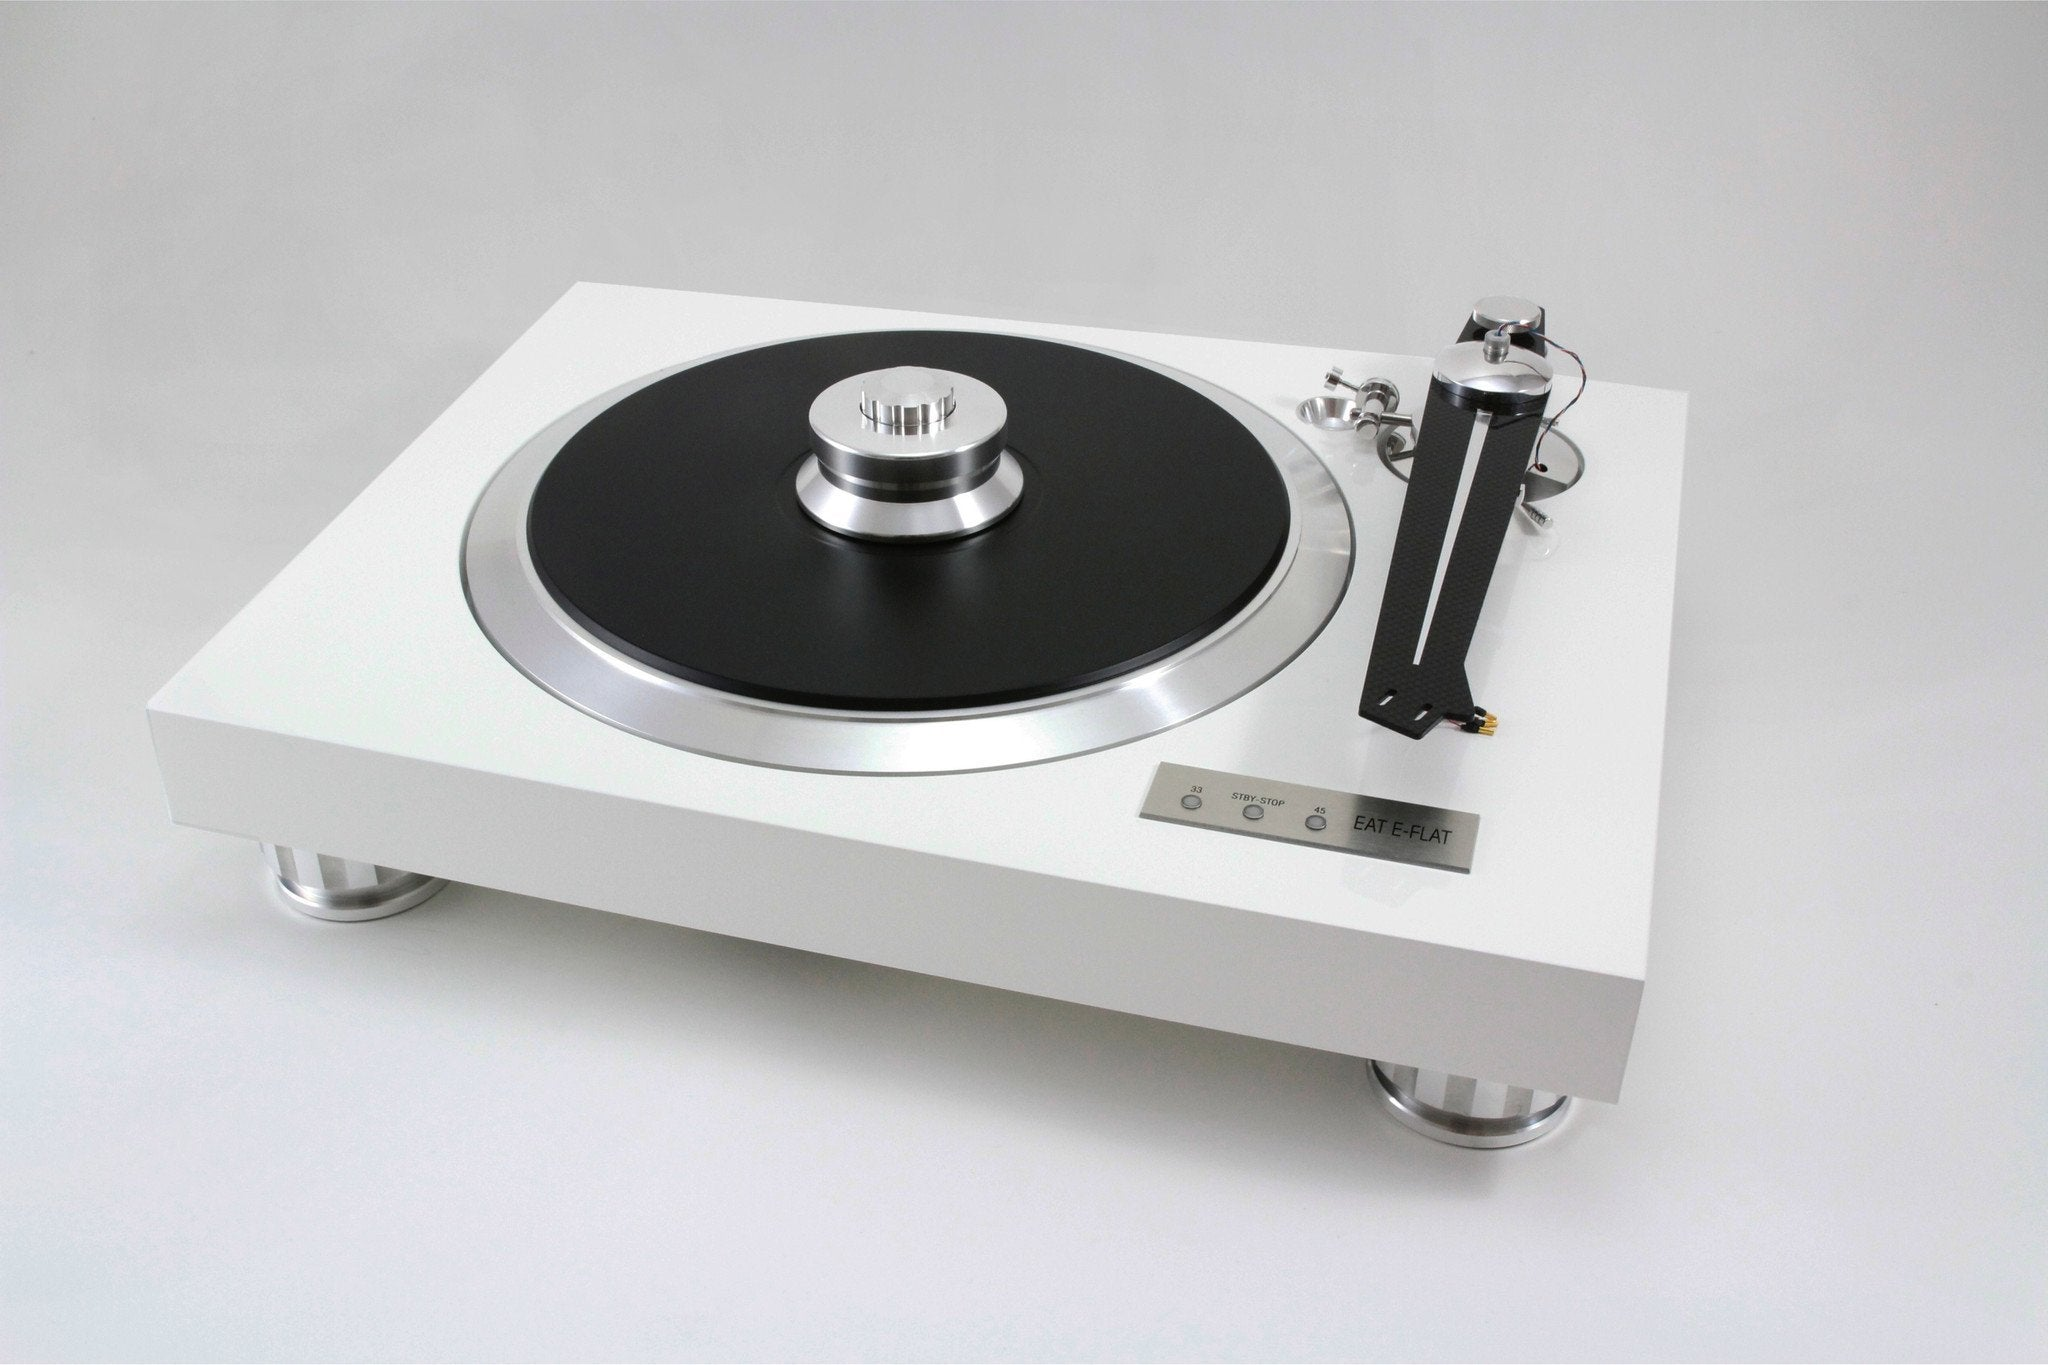 EAT E-Flat Turntable and Ortofon Quintet Black Cartridge Option-Turntable-Audio Den